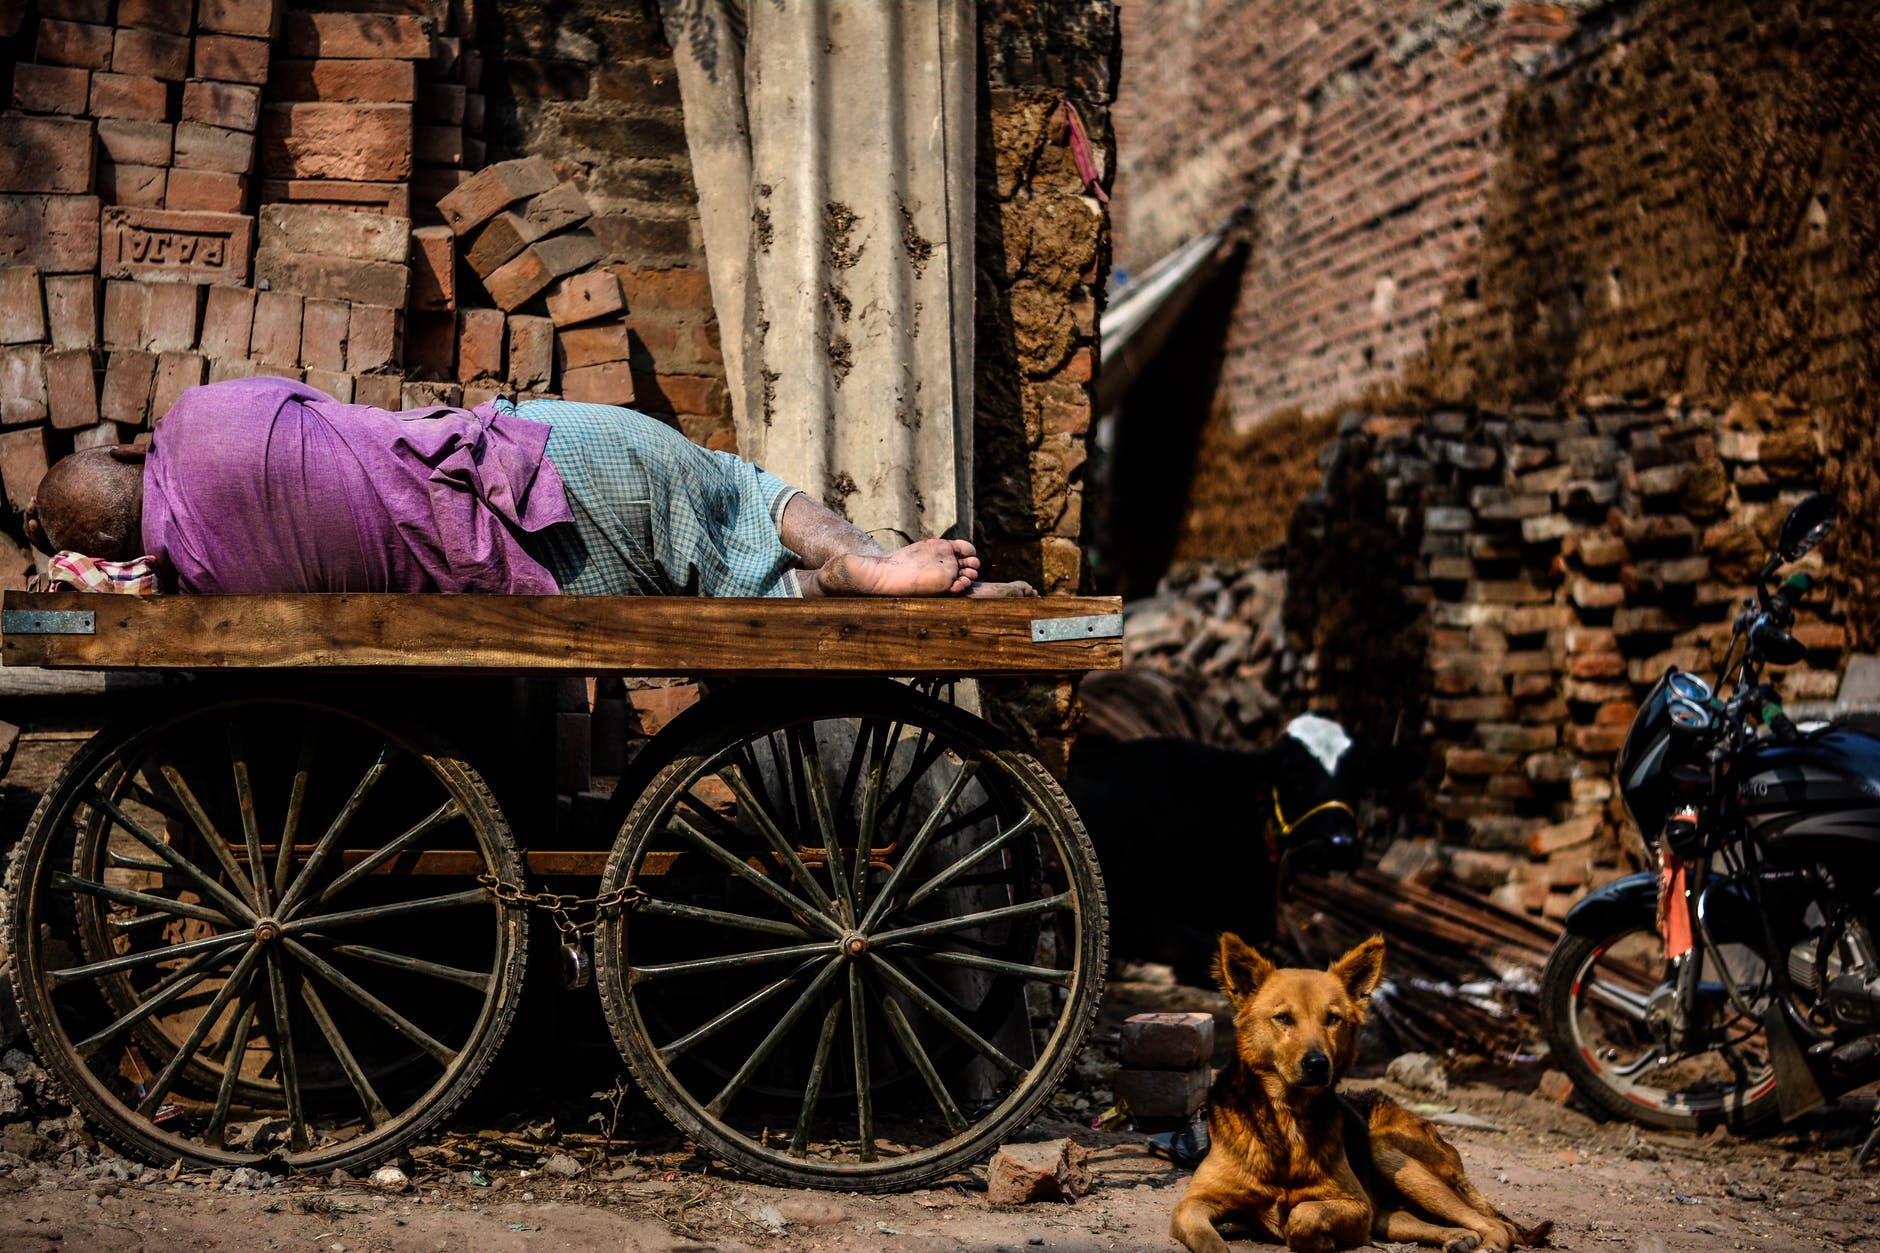 person lying on cart